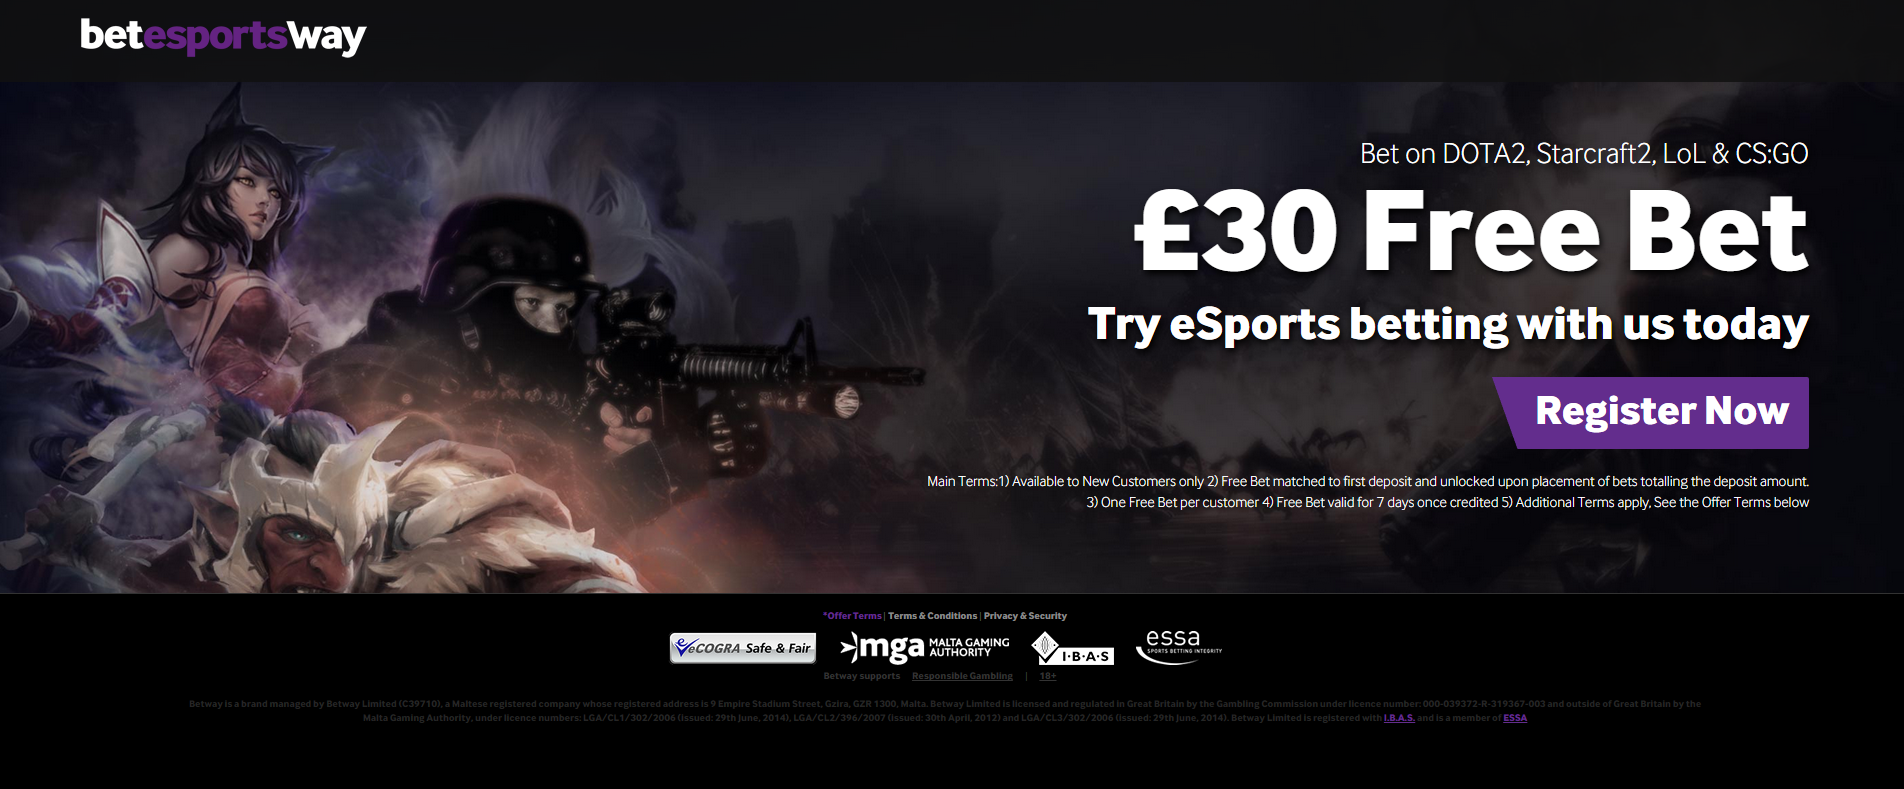 Casino Playbonds bet365 esports-416933